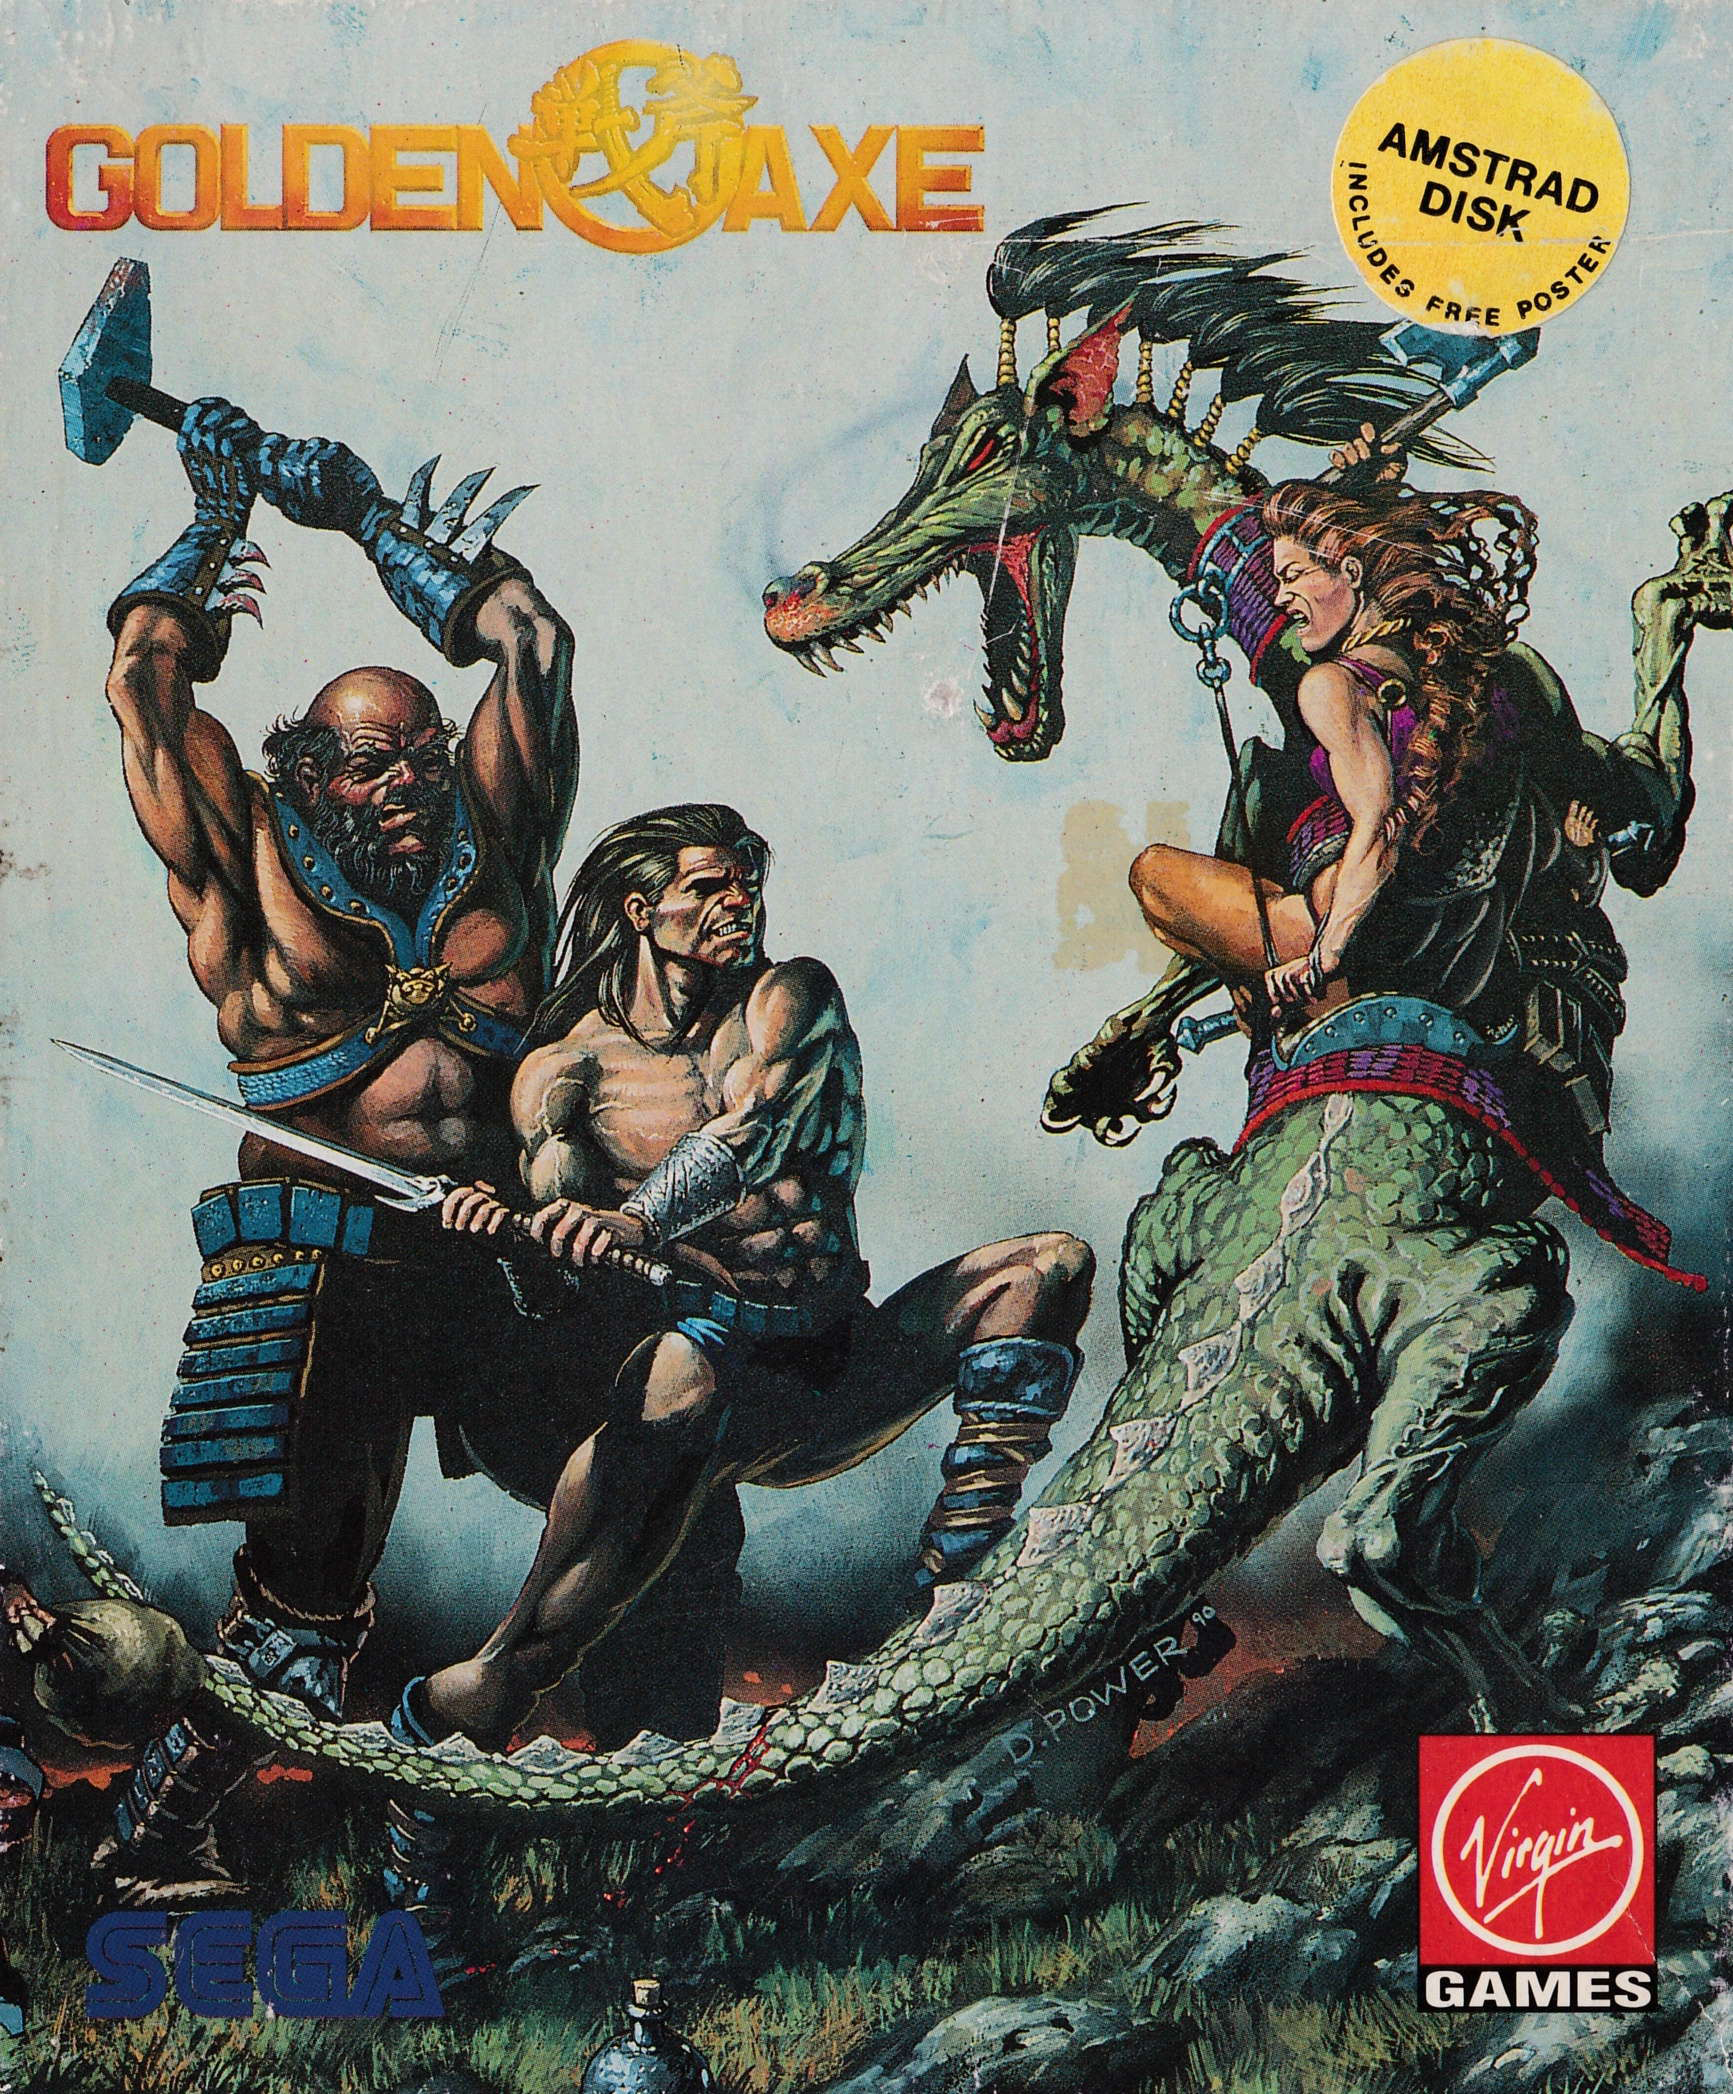 screenshot of the Amstrad CPC game Golden Axe by GameBase CPC